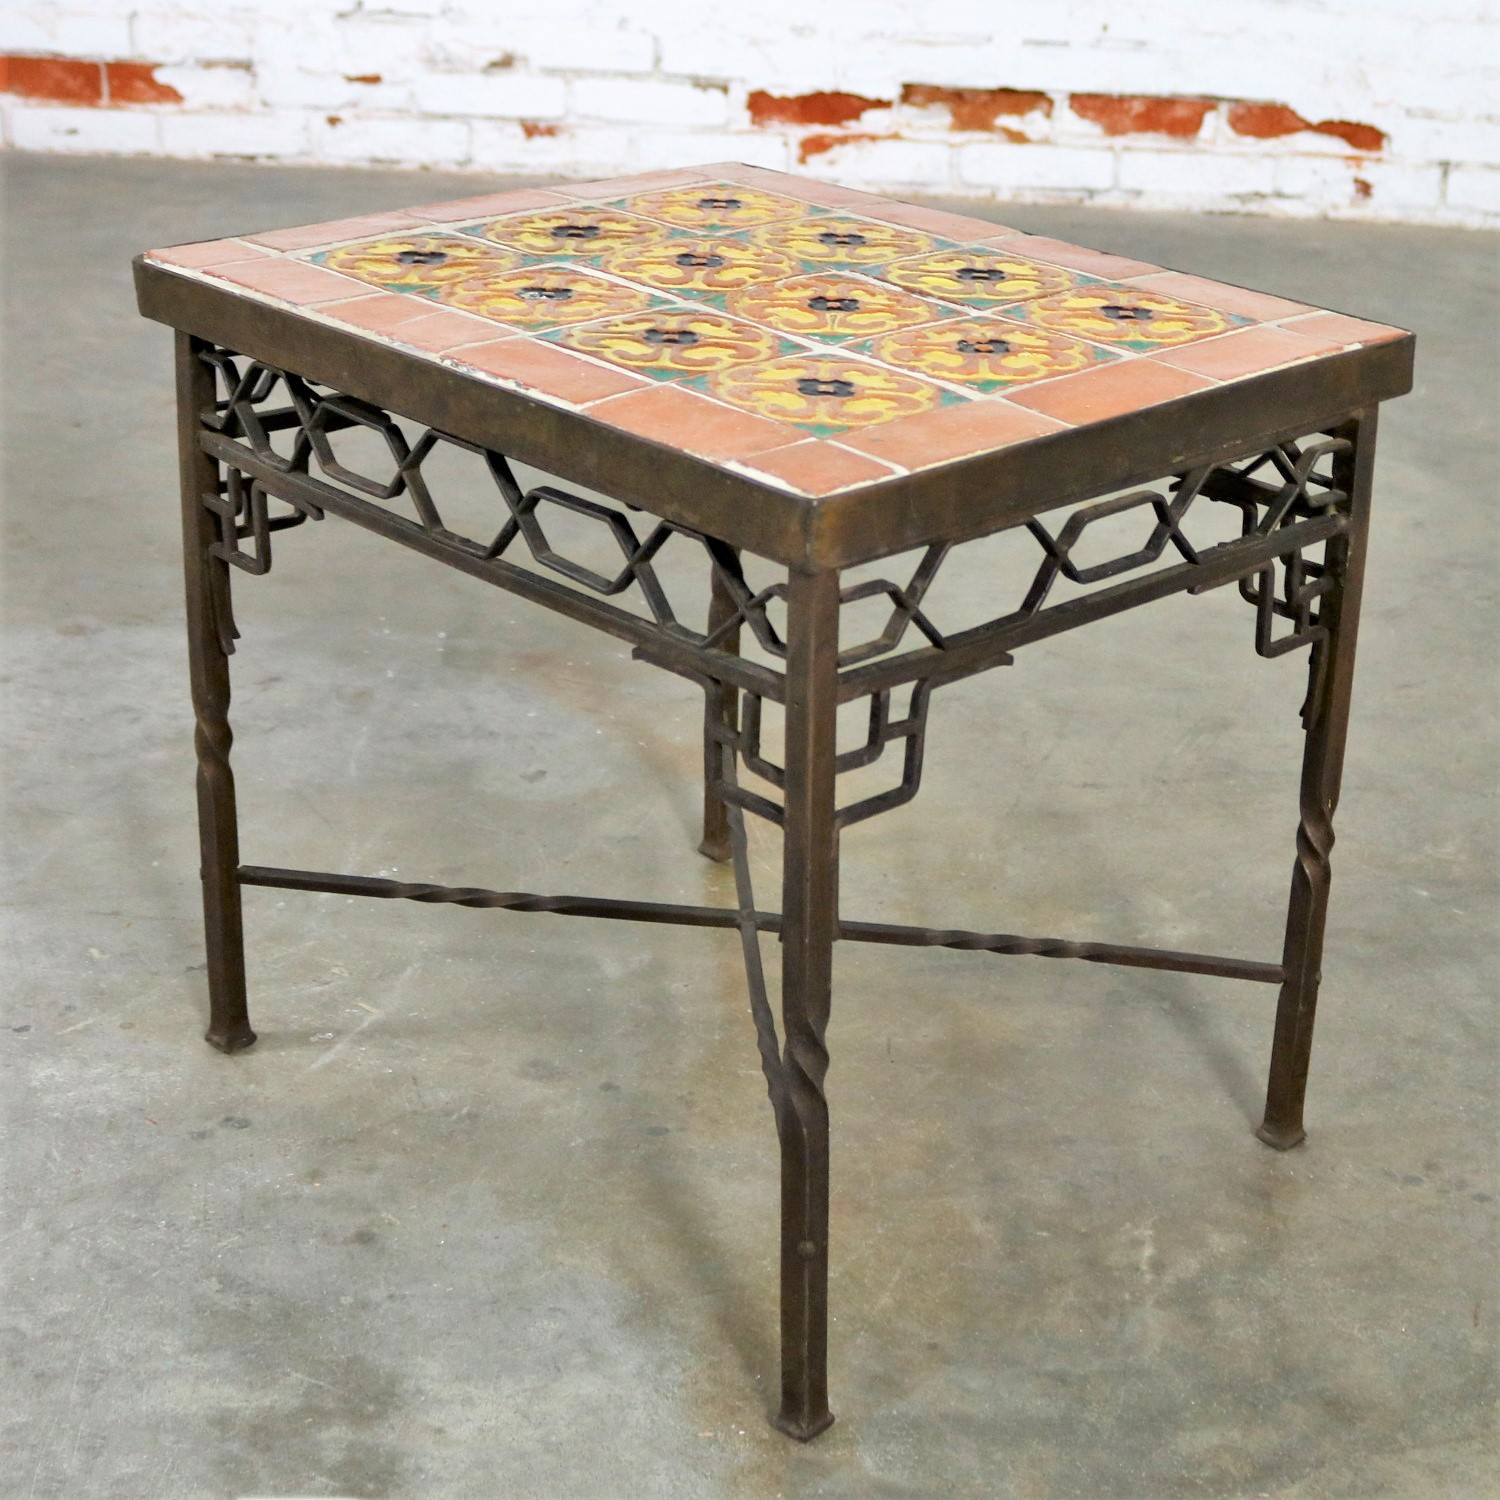 Delicieux Art Deco Wrought Iron And Tile Side Table California Style Tiles